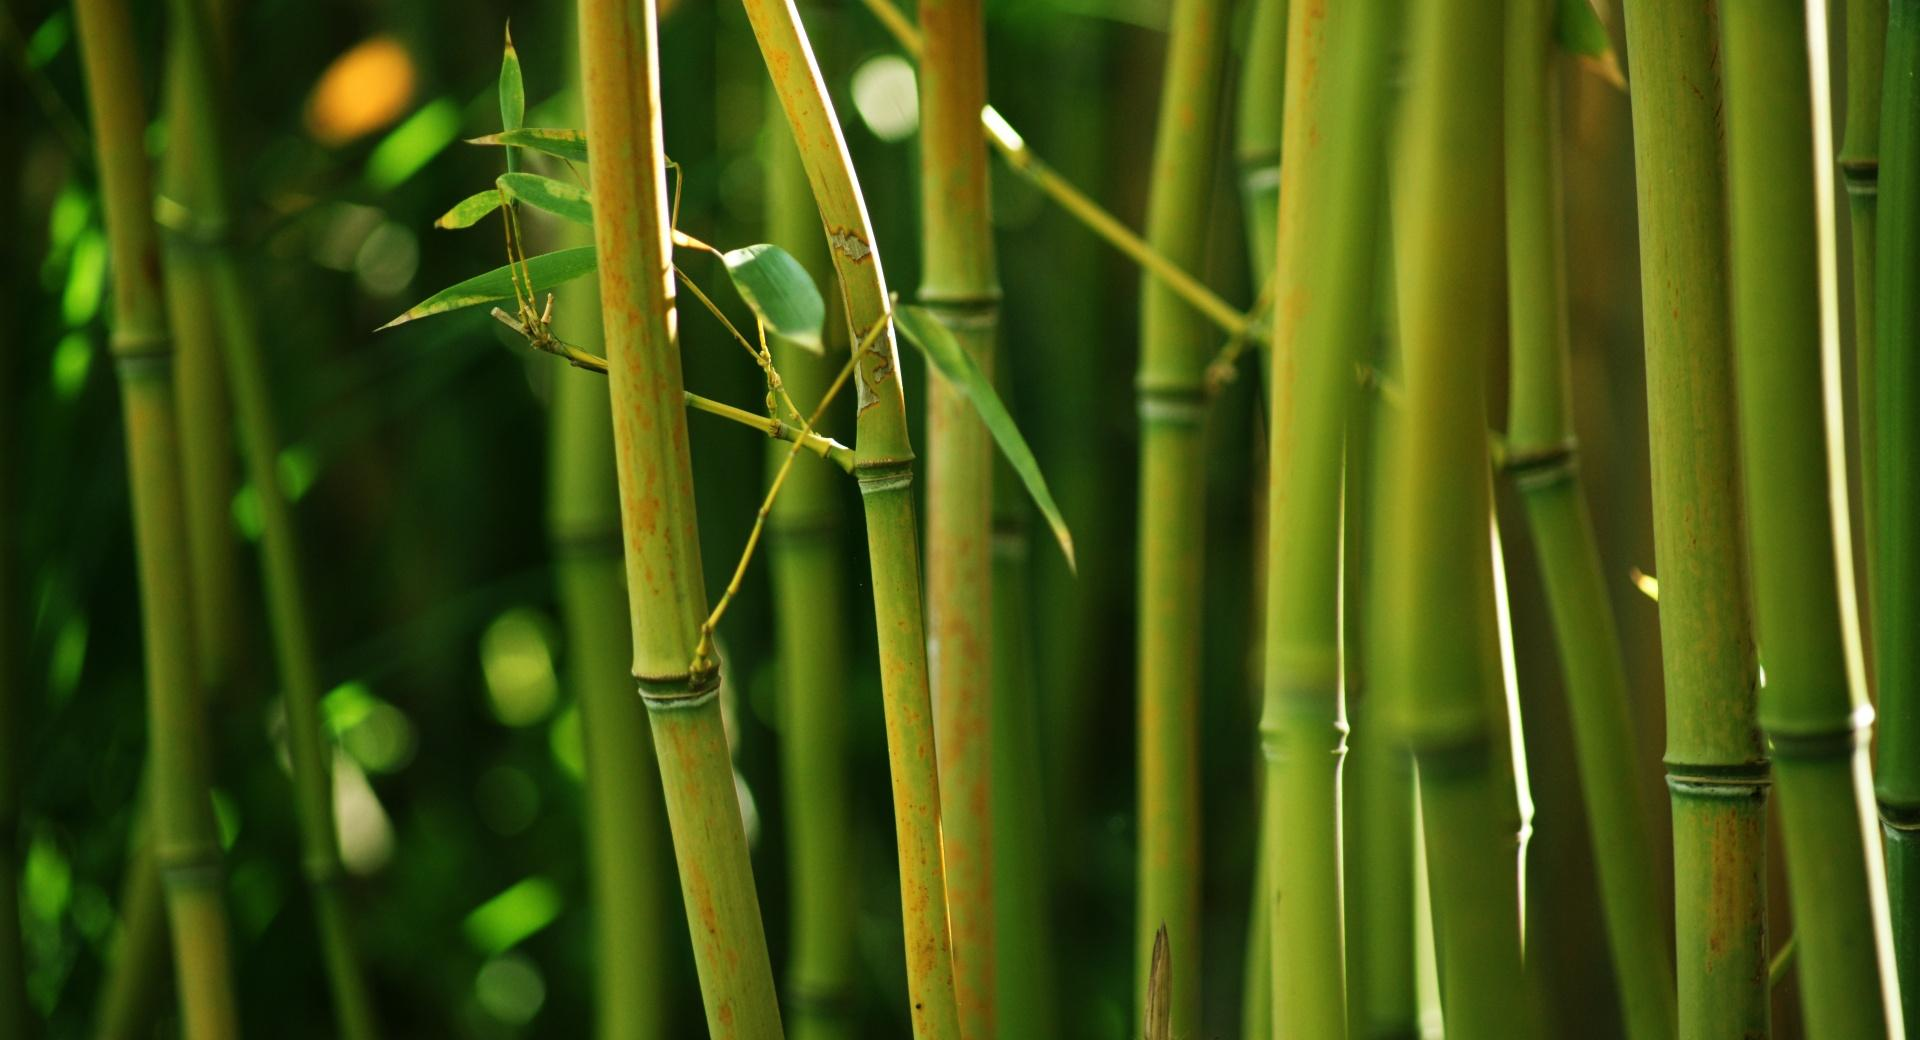 Bamboo Stems wallpapers HD quality